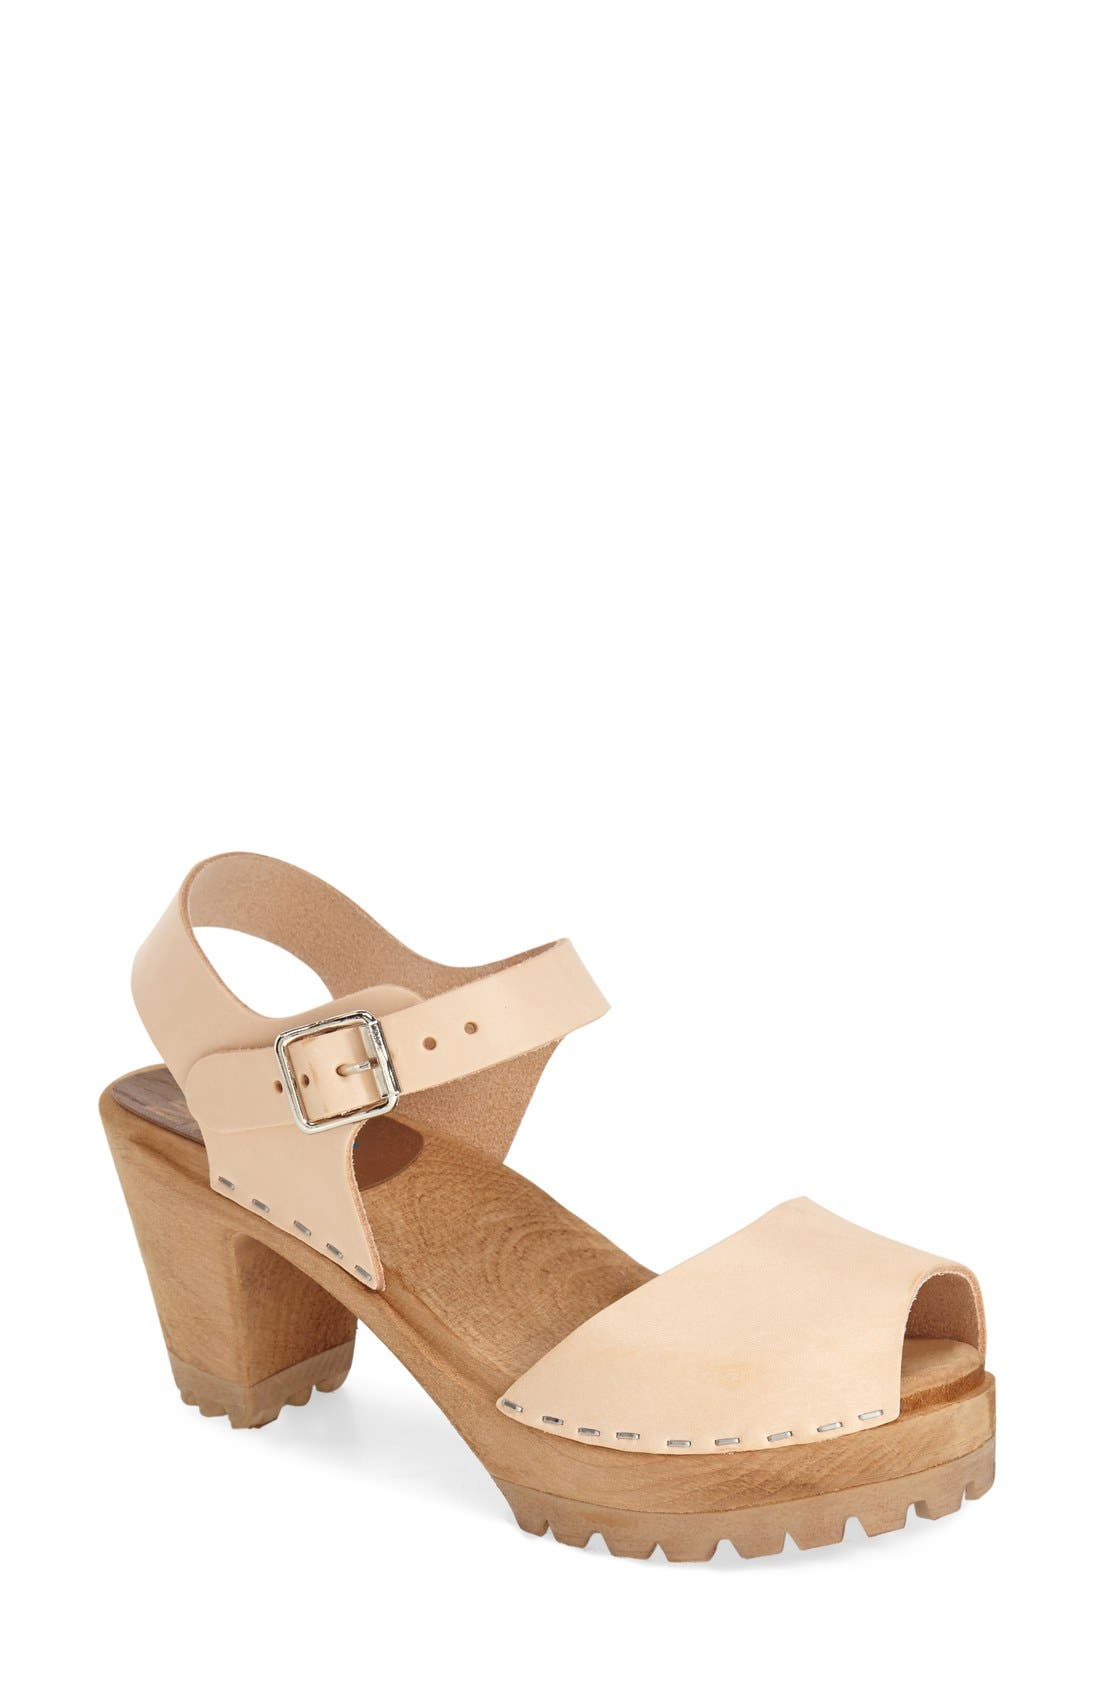 Alternate Image 1 Selected - MIA 'Greta' Clog Sandal (Women)